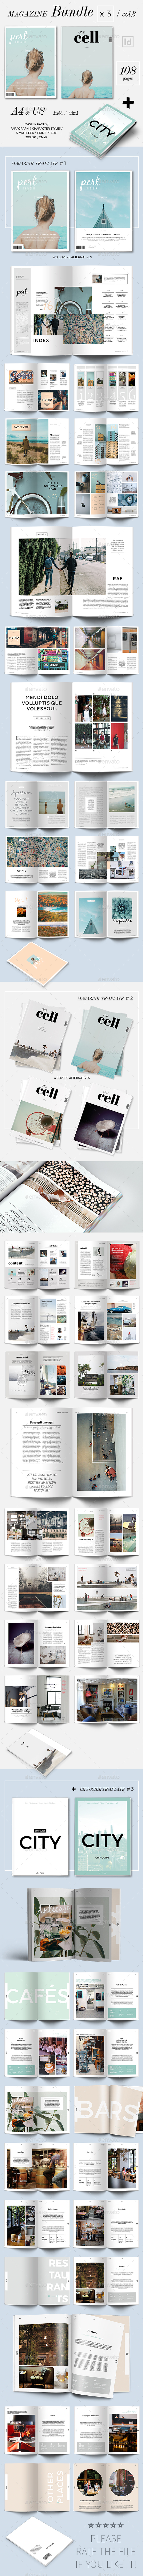 Magazine Template Bundle 03 - Magazines Print Templates